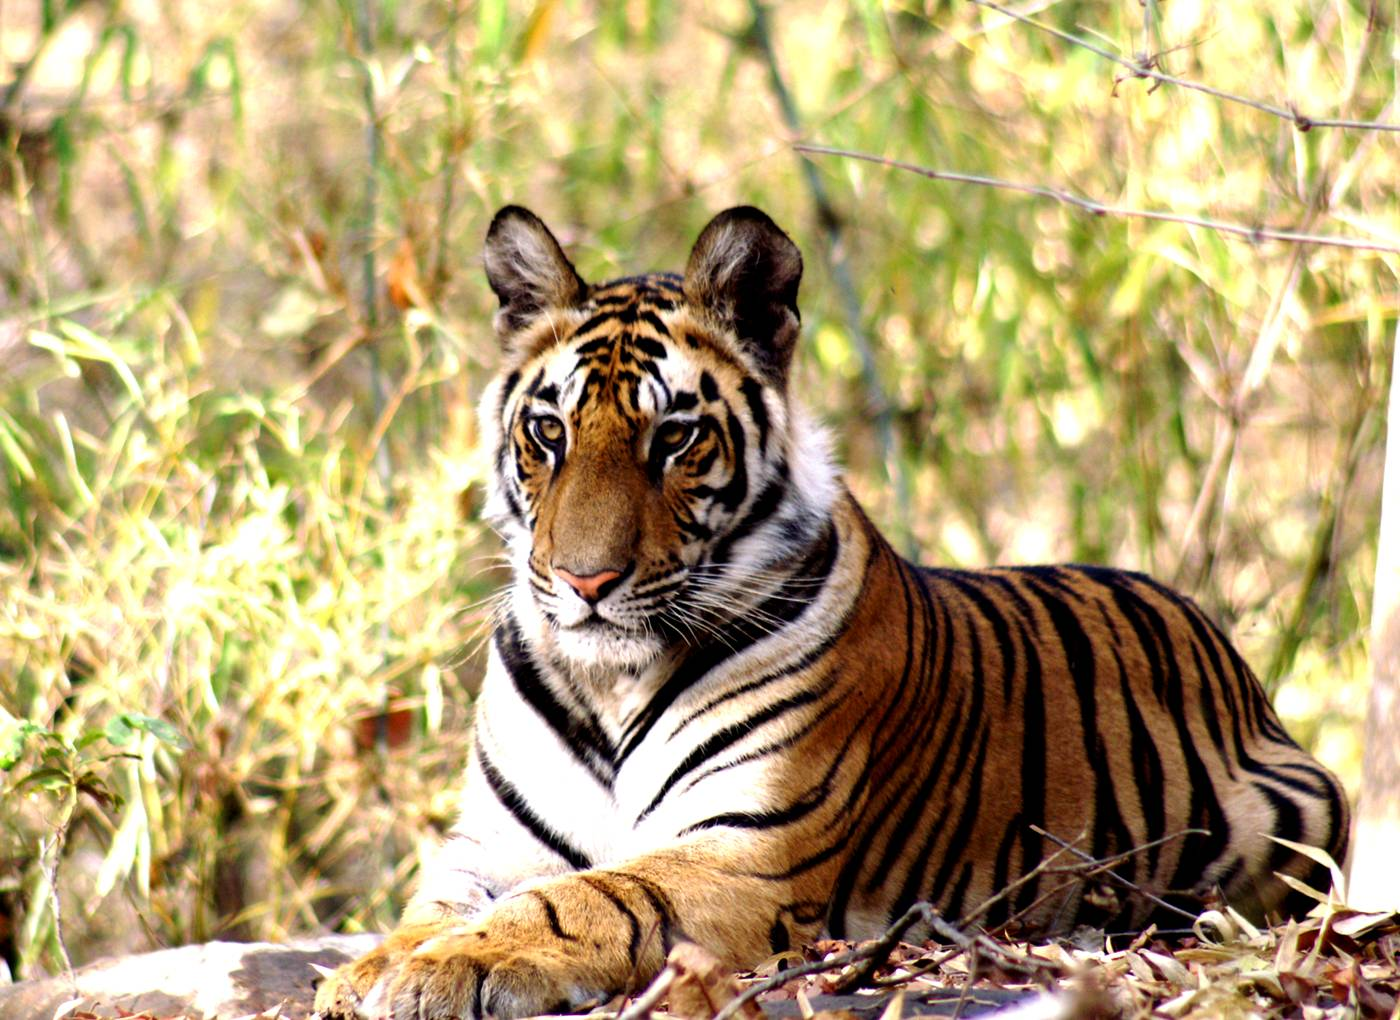 Tiger in the brush king of the jungle discover India's vast biodiversity